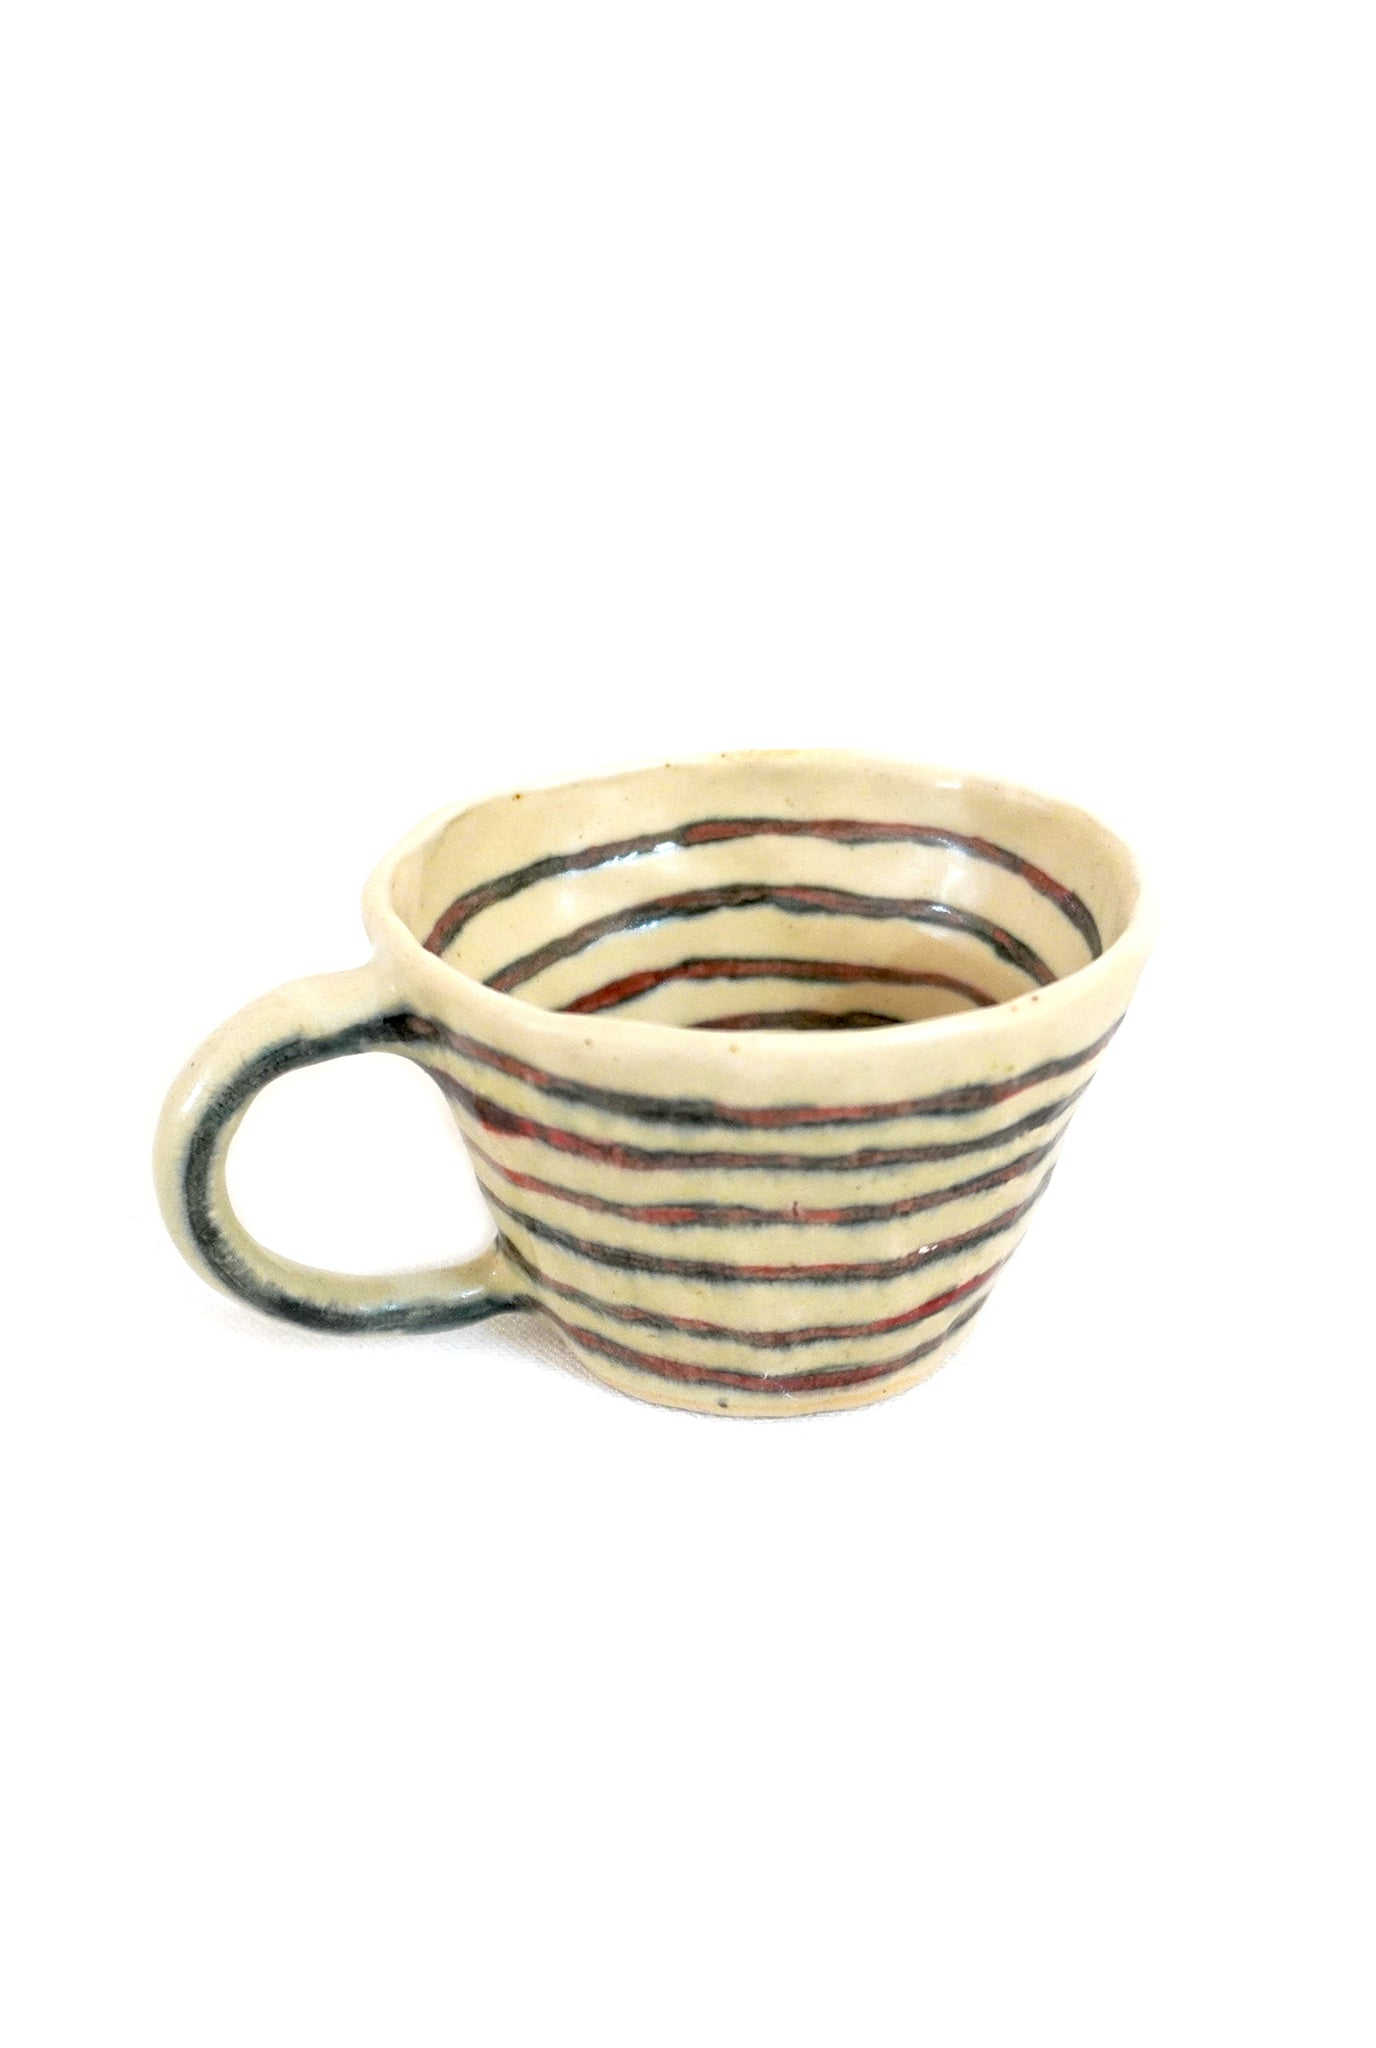 STRIPED CUPS - SET OF 2